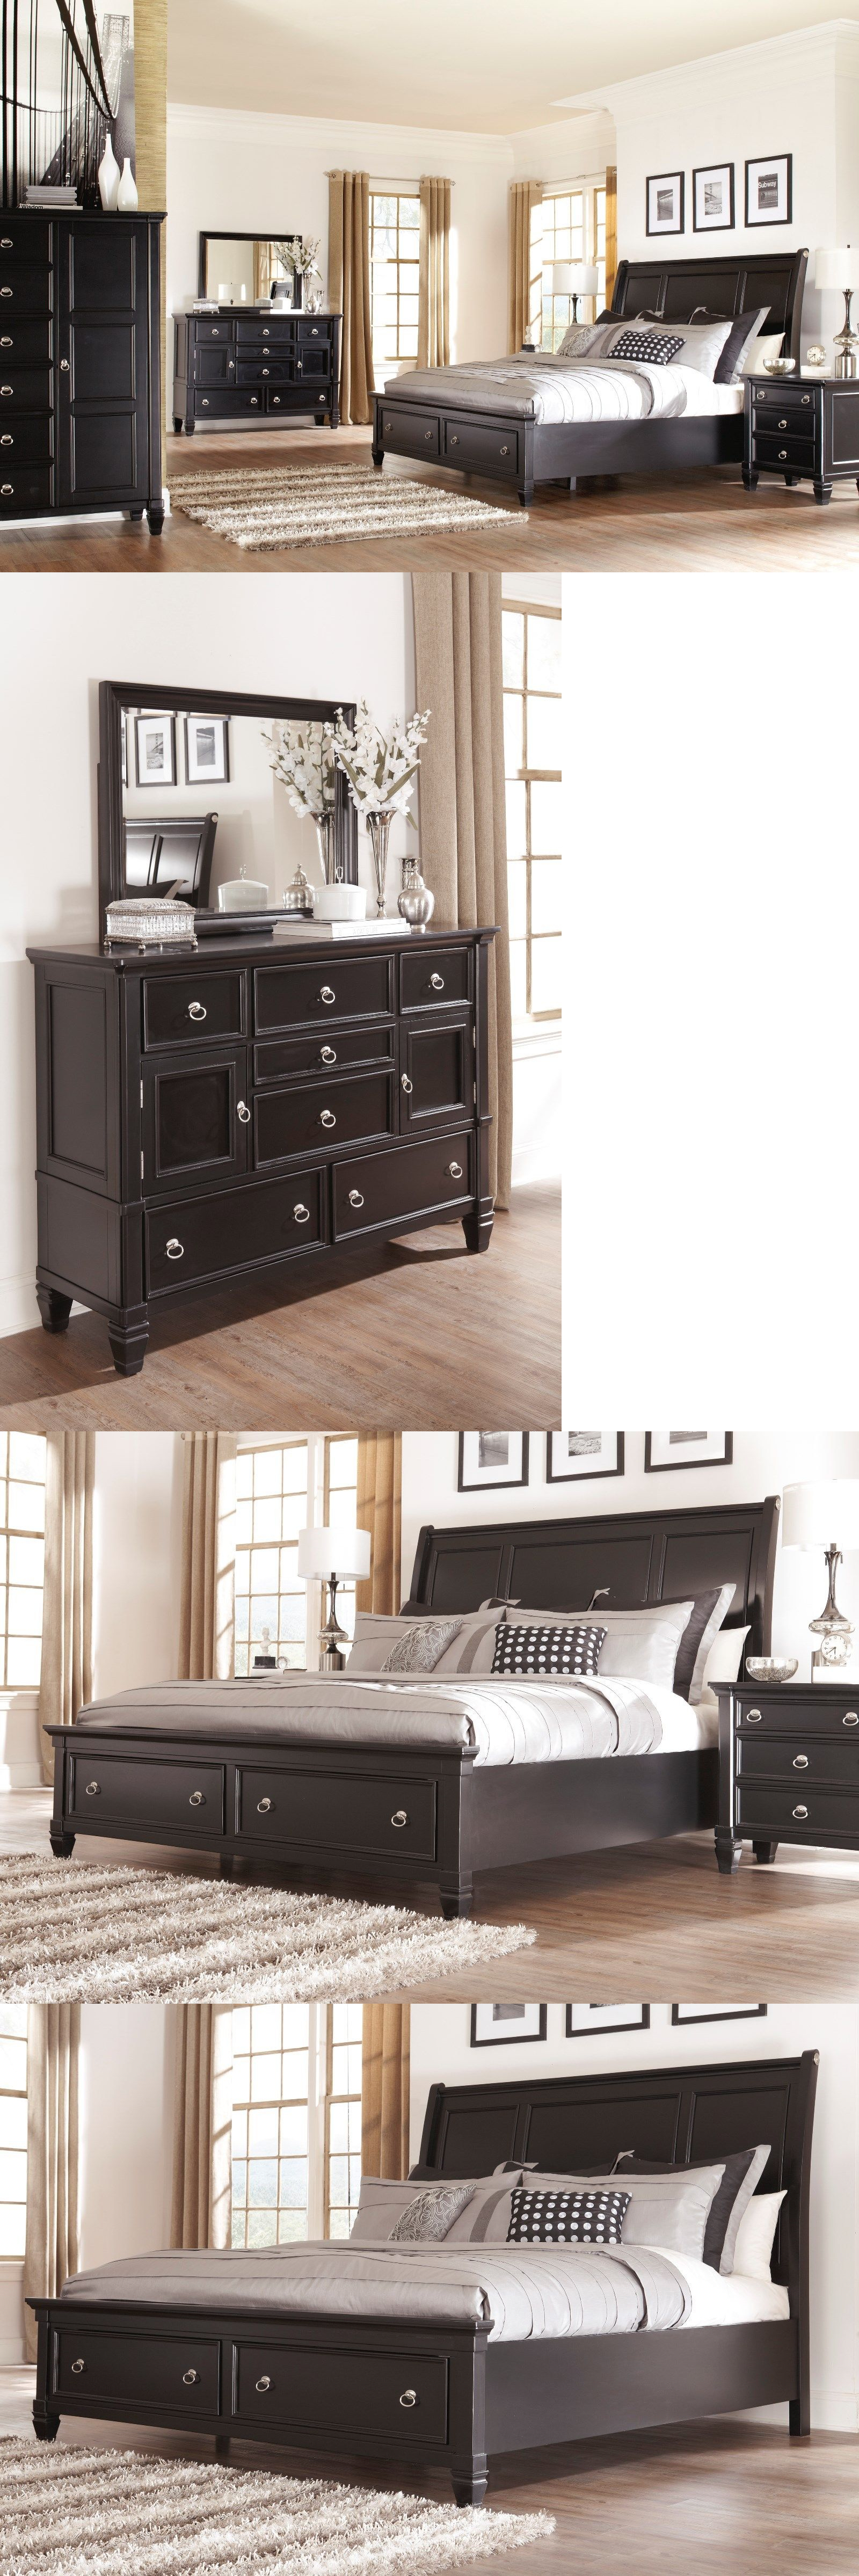 Bedroom Sets 20480: Ashley Greensburg 6 Piece Queen Bed Set W ...